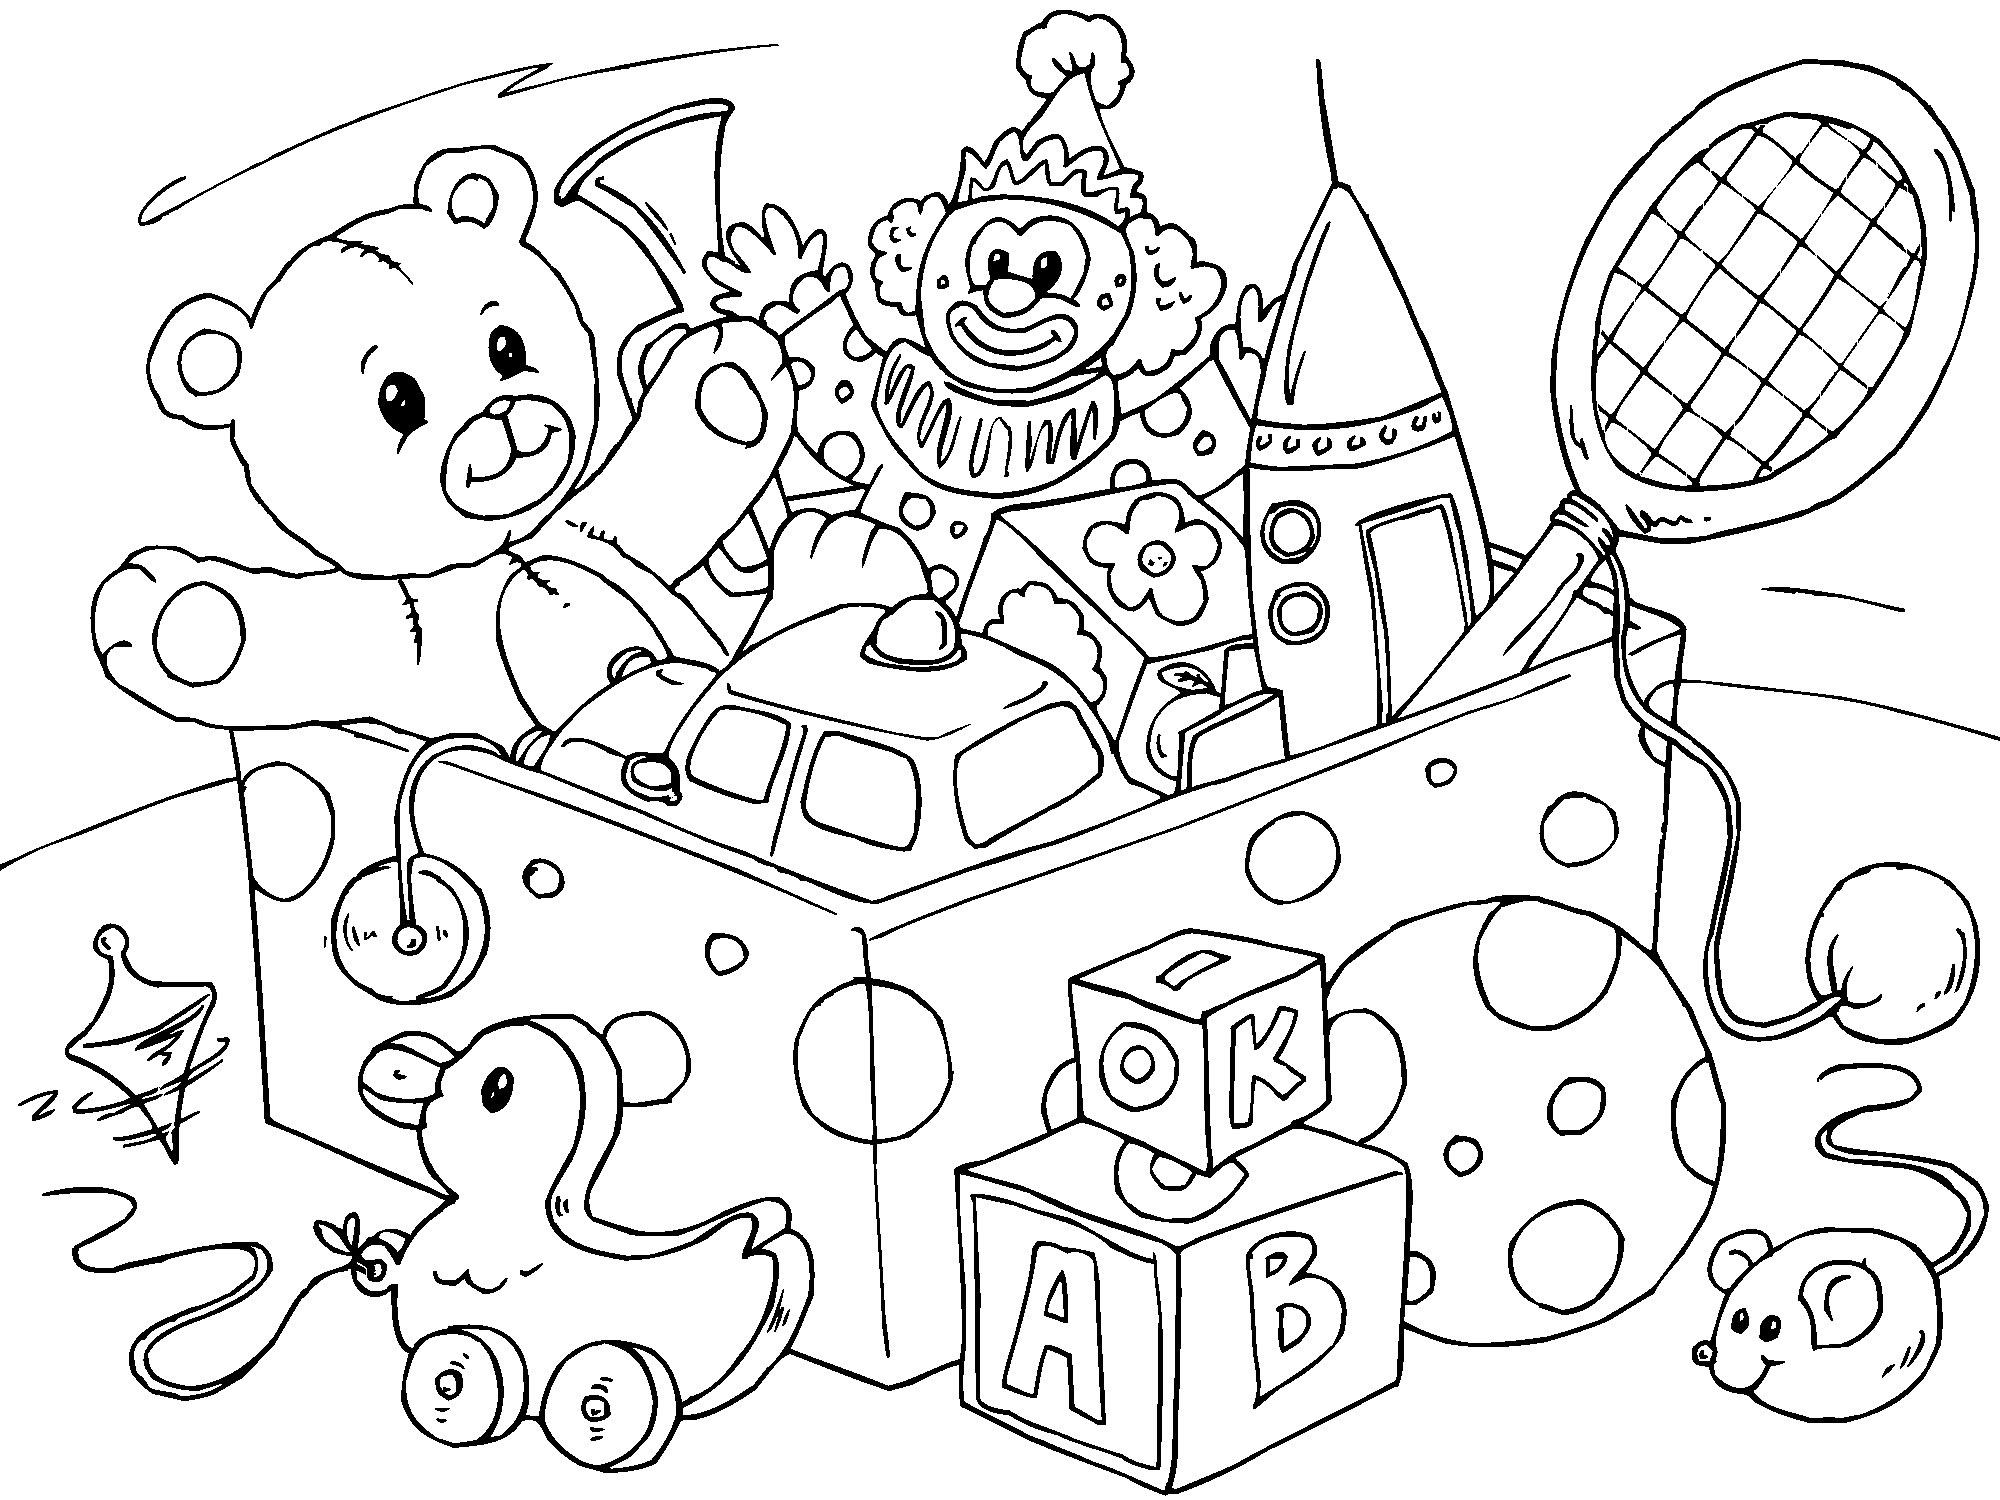 Coloring page toys img 22821